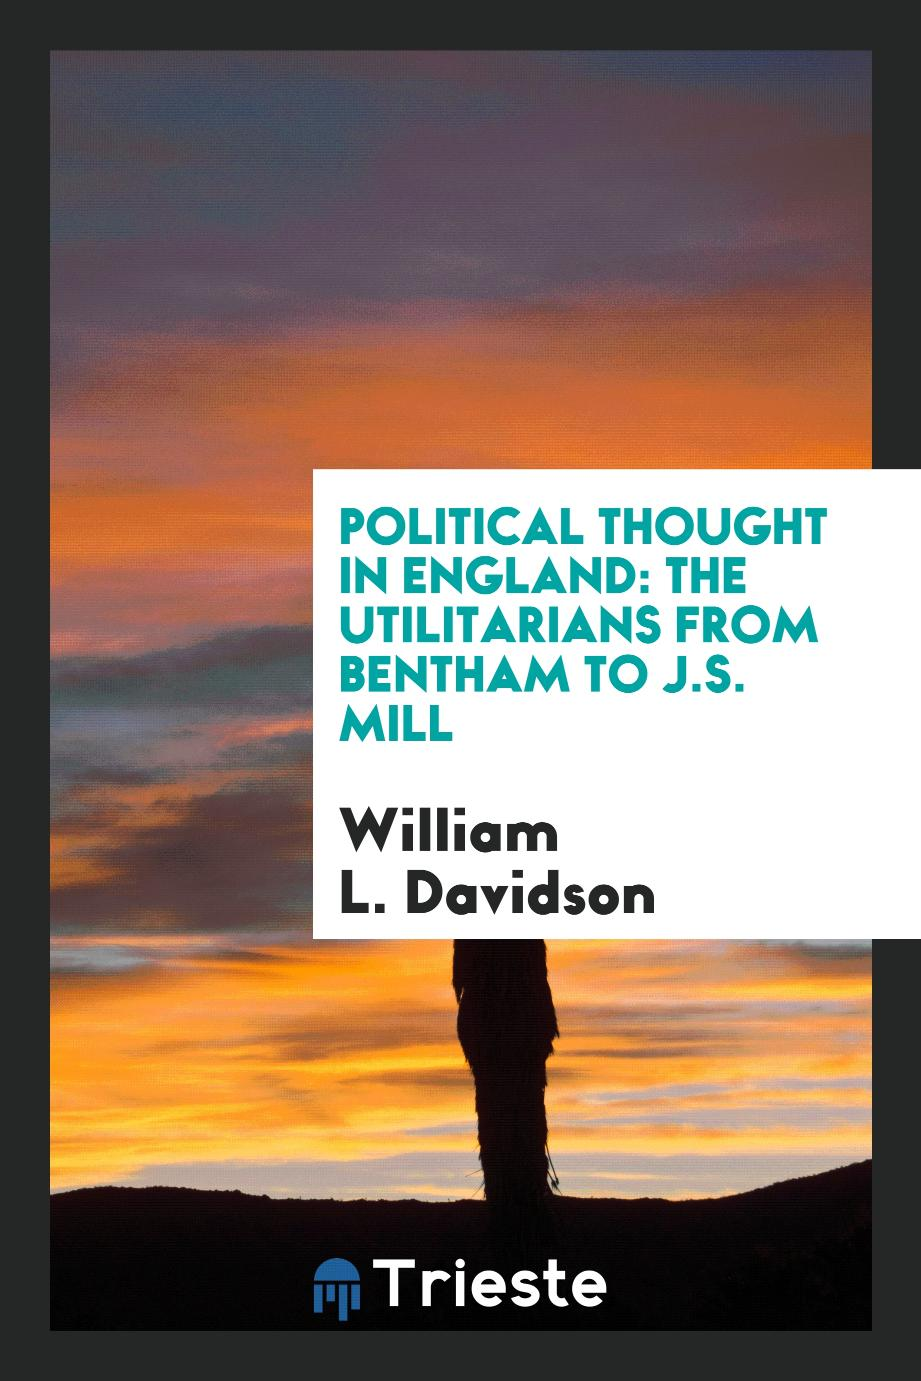 Political thought in England: the Utilitarians from Bentham to J.S. Mill